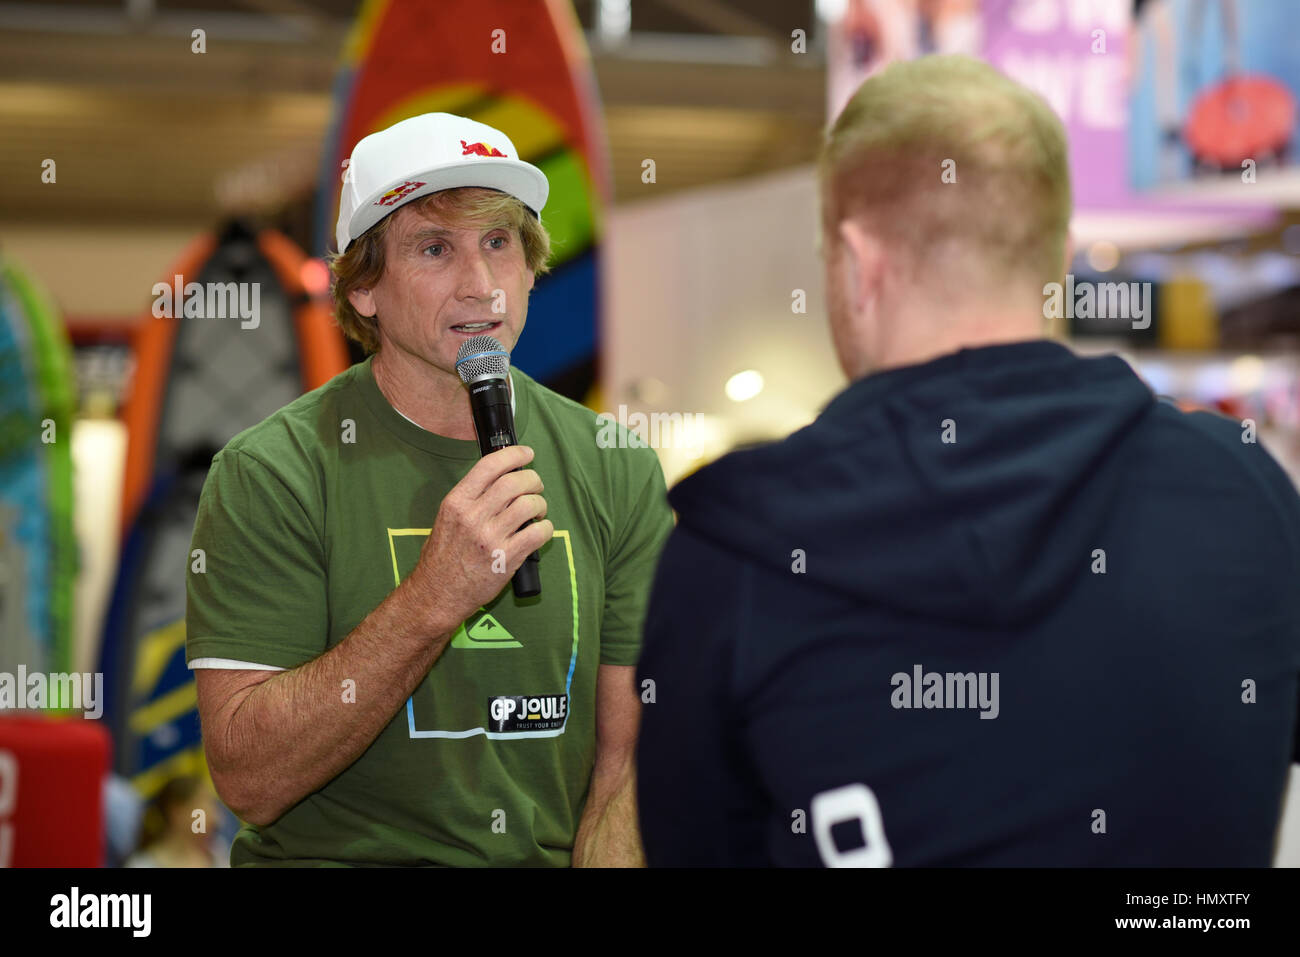 Munich, Germany. 7th February, 2017. Robby Naish (left side), American kitesurfing and windsurfing legend, sports - Stock Image